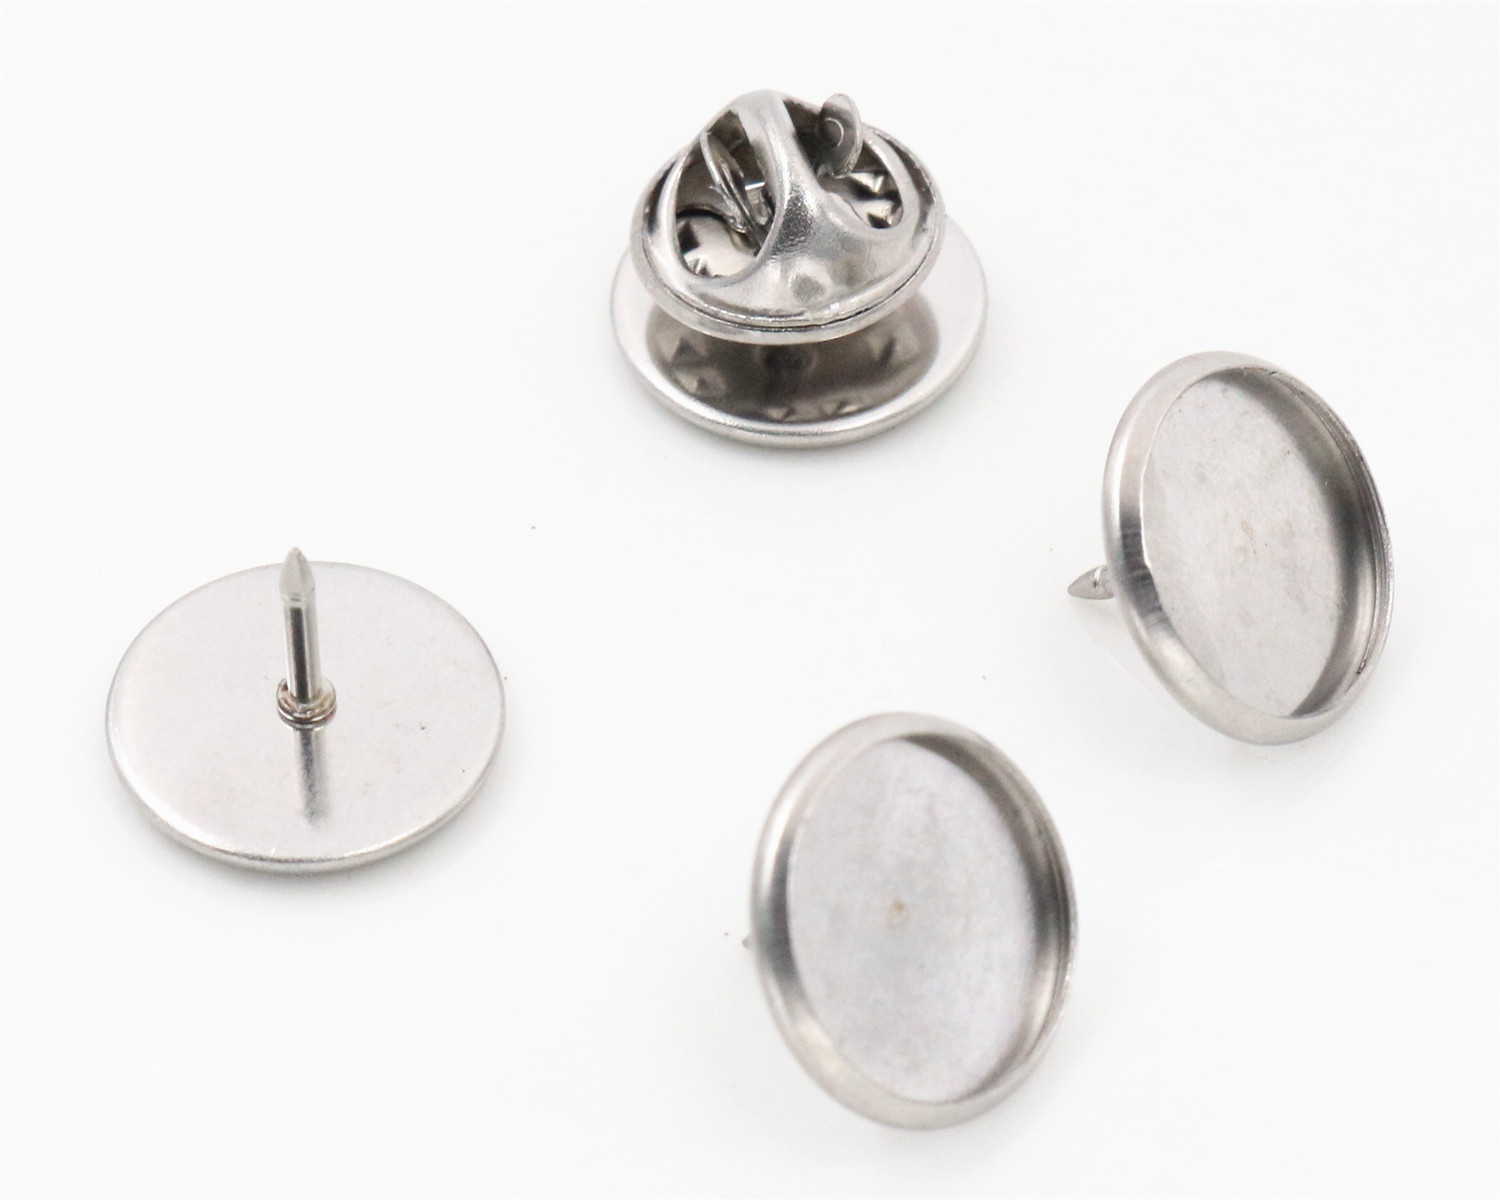 Spacer-Settings Cufflink Brooch-Style Cabochon-Base Blank Material Stainless-Steel Tack